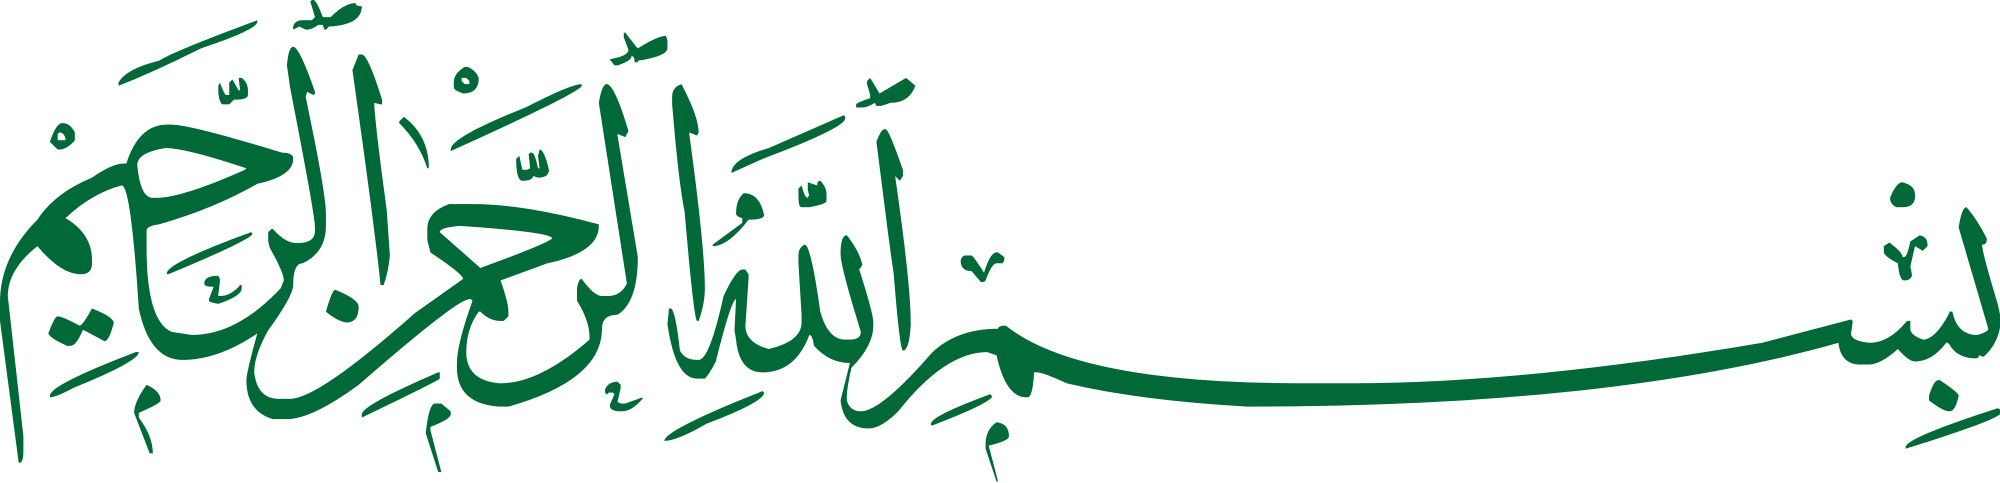 Bismillah Vector Arab Svg Stock.